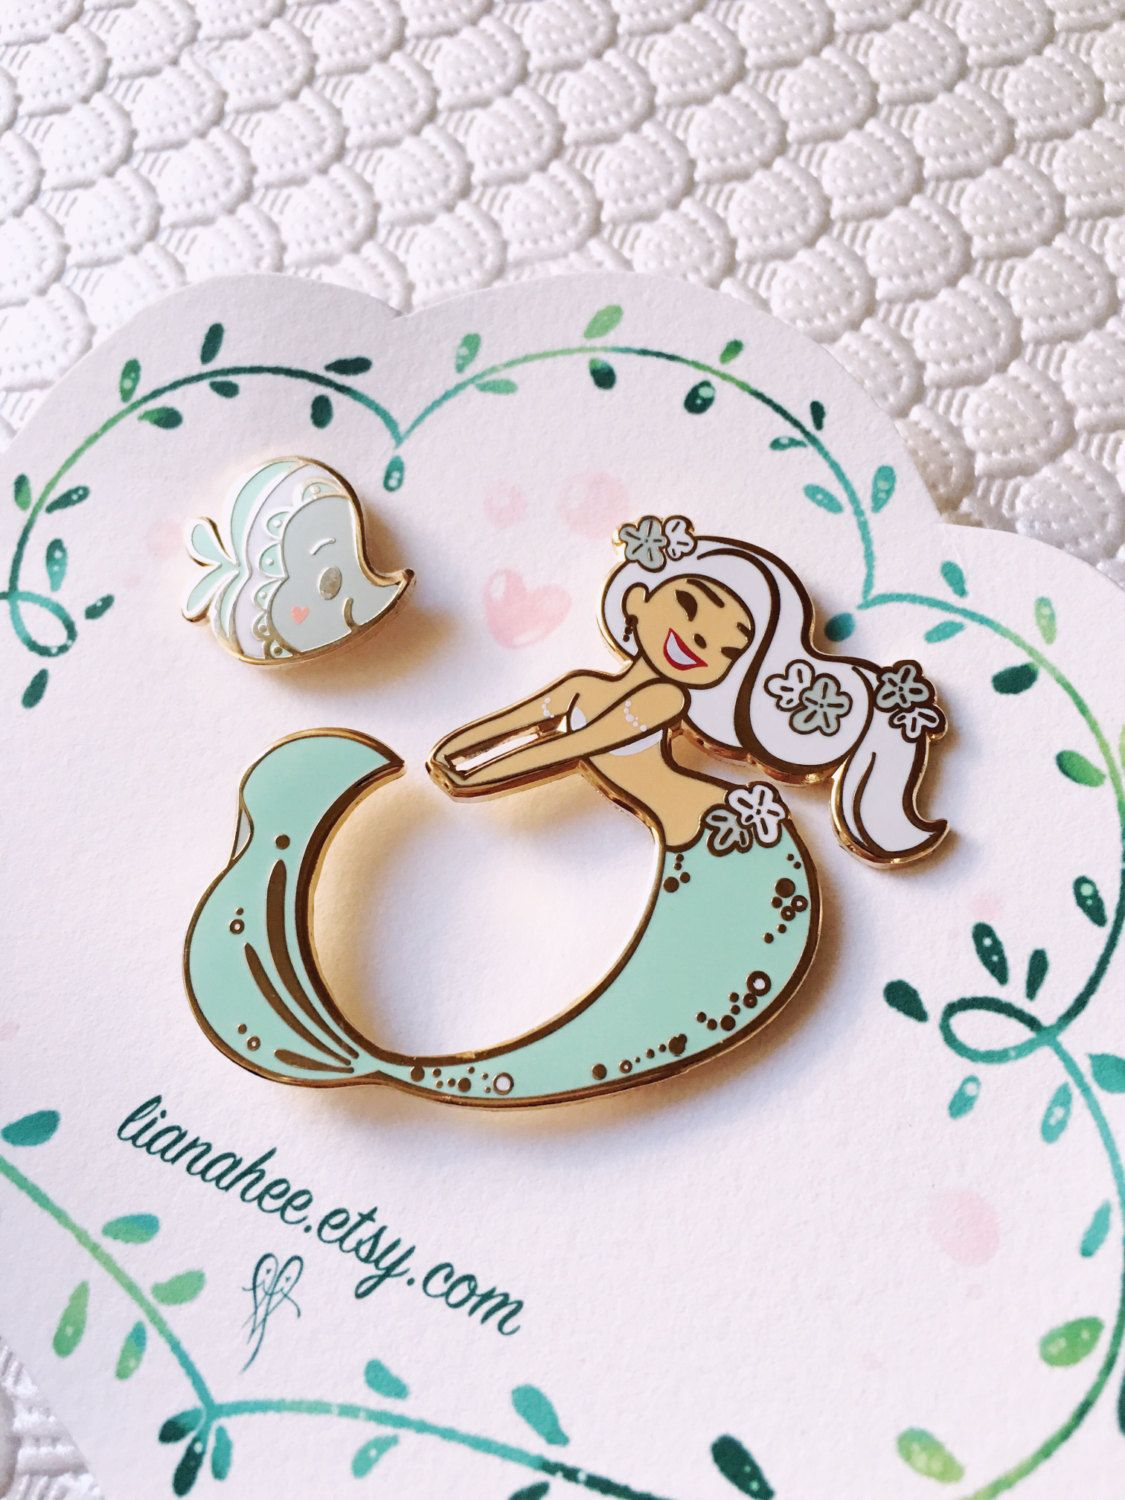 This mint mermie and her fishie friend is ready to play! Lovely gold toned enamel pins are a perfect addition to a bag or coat to stand out in the crowd. :) Mini mermie measures 2 inches tall and mini fishie measures .75 inches tall. Comes shipped with velvet paper backing inside a clear, protective, plastic sleeve.